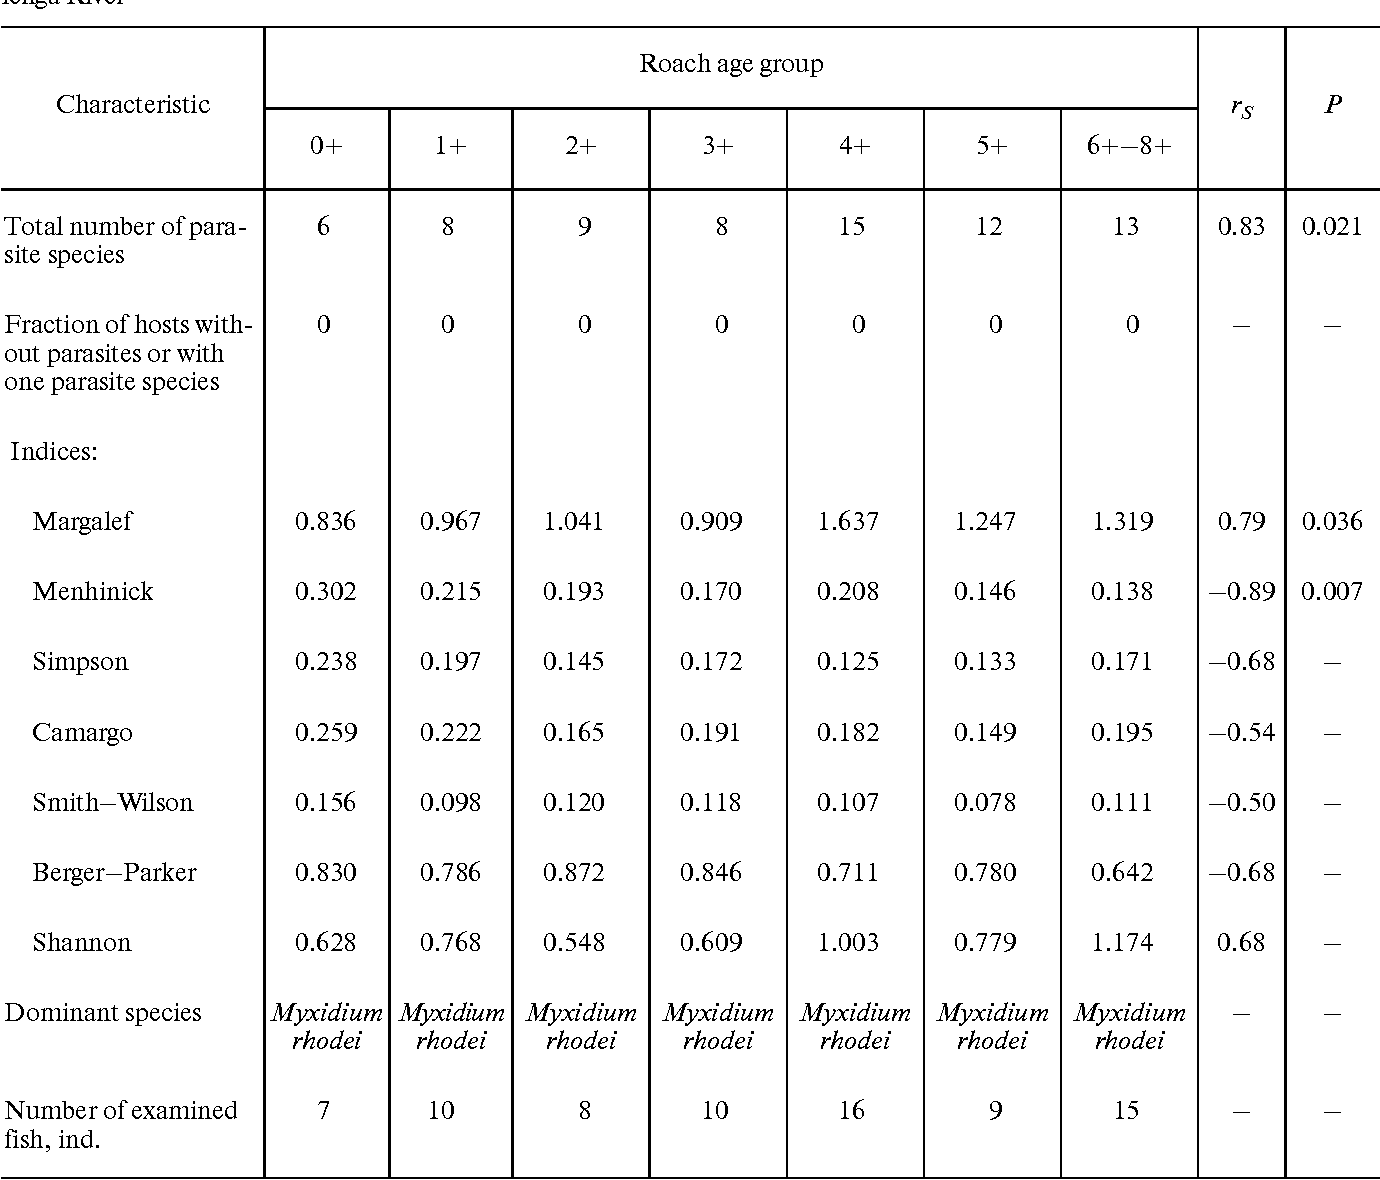 Table 5 from Dependence that the community structure of the roach